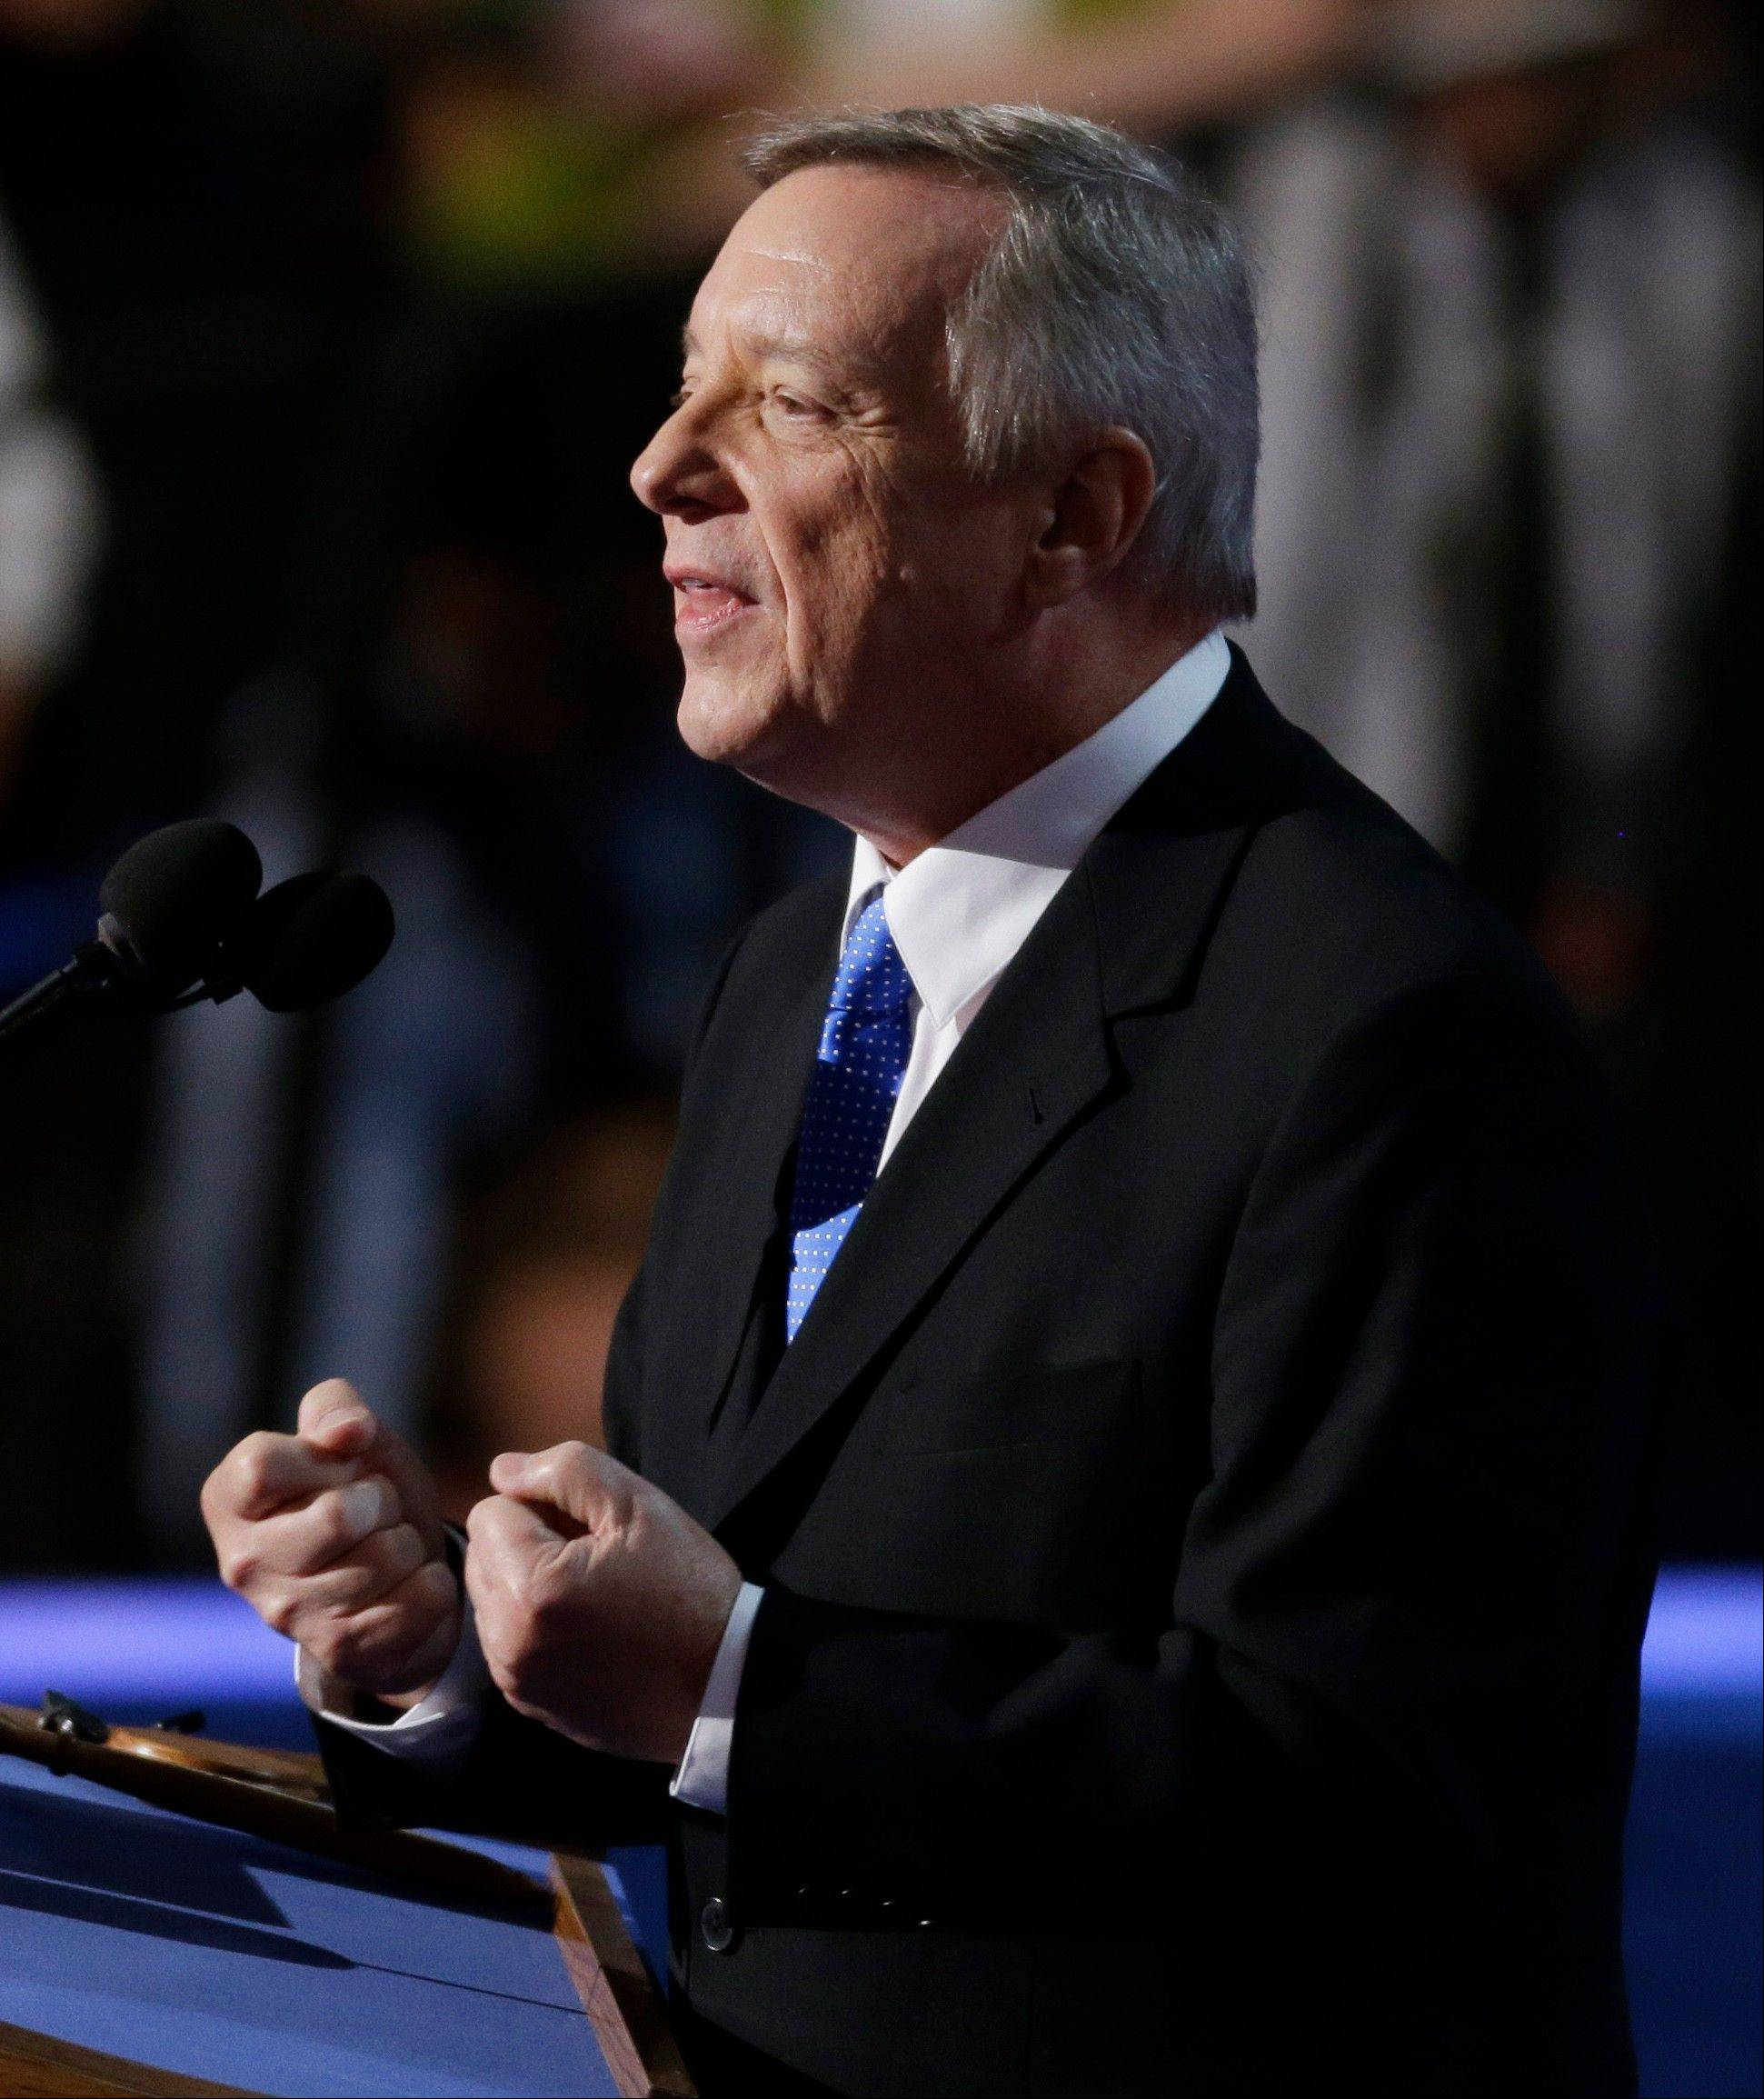 Sen. Dick Durbin of Illinois speaks to delegates at the Democratic National Convention in Charlotte, N.C., on Thursday.